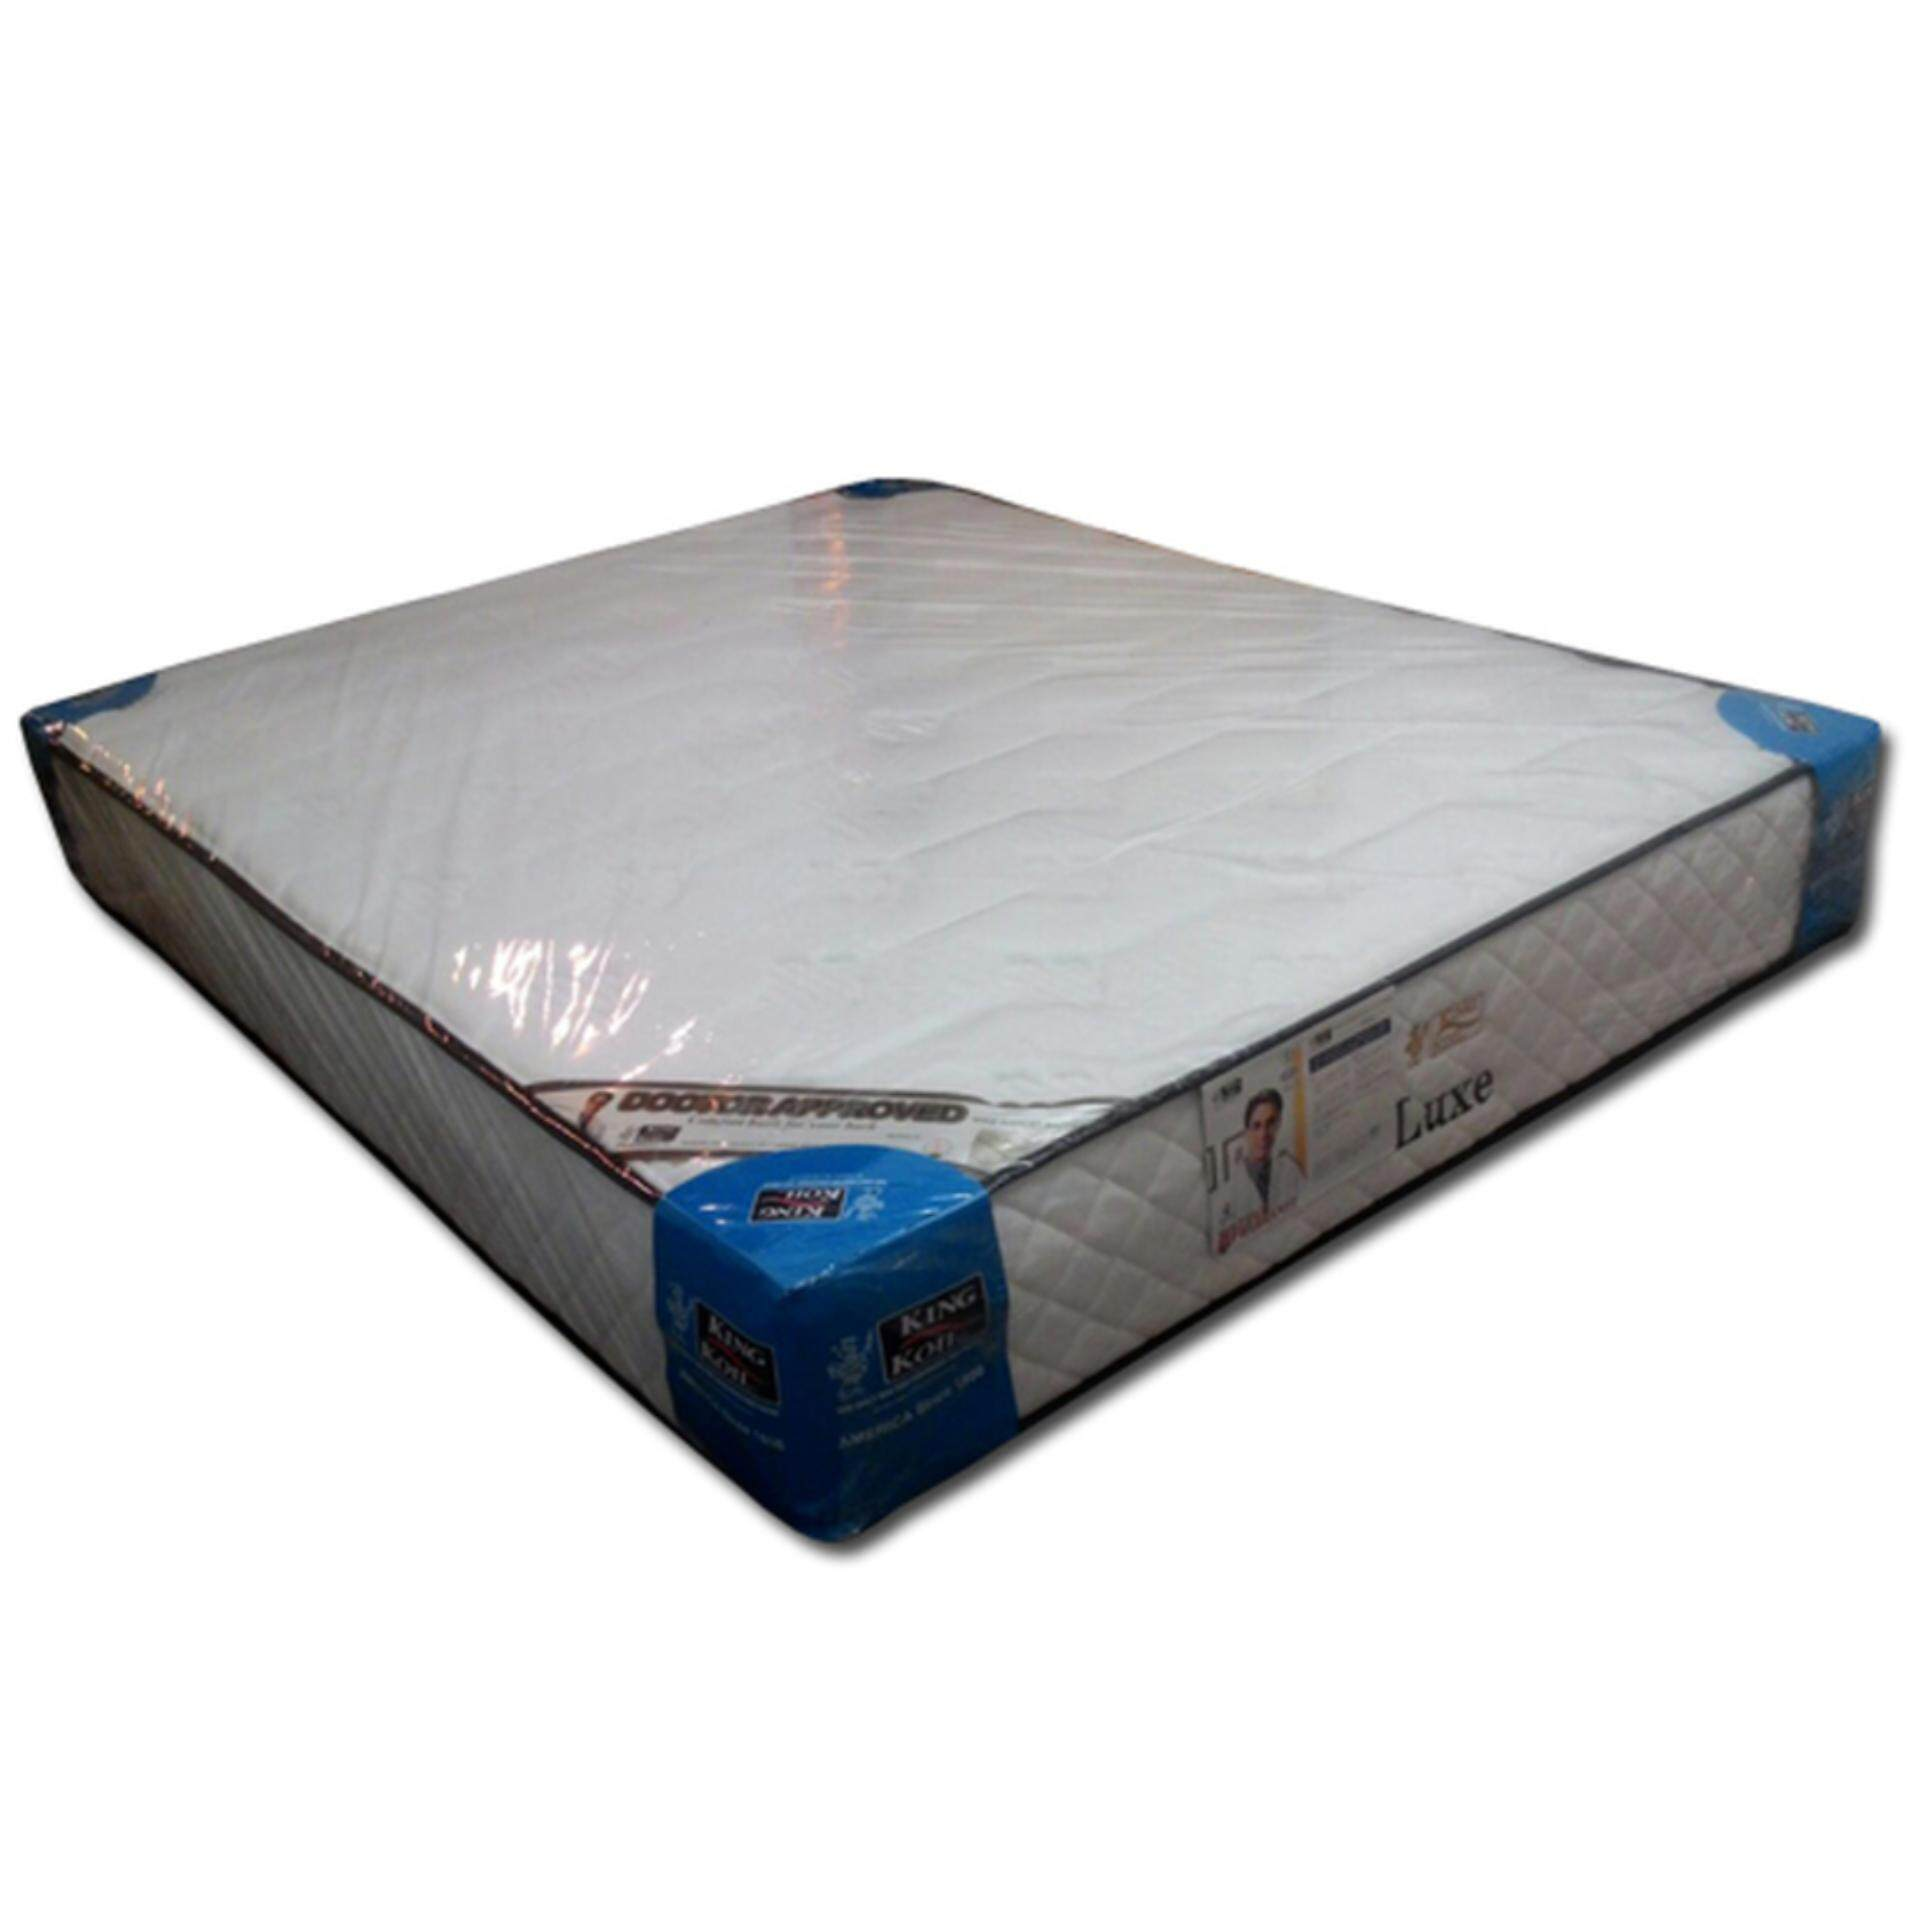 King Koil Luxe 11 Inches Firm Chiropractic Spring Mattress (10 Years Warranty)